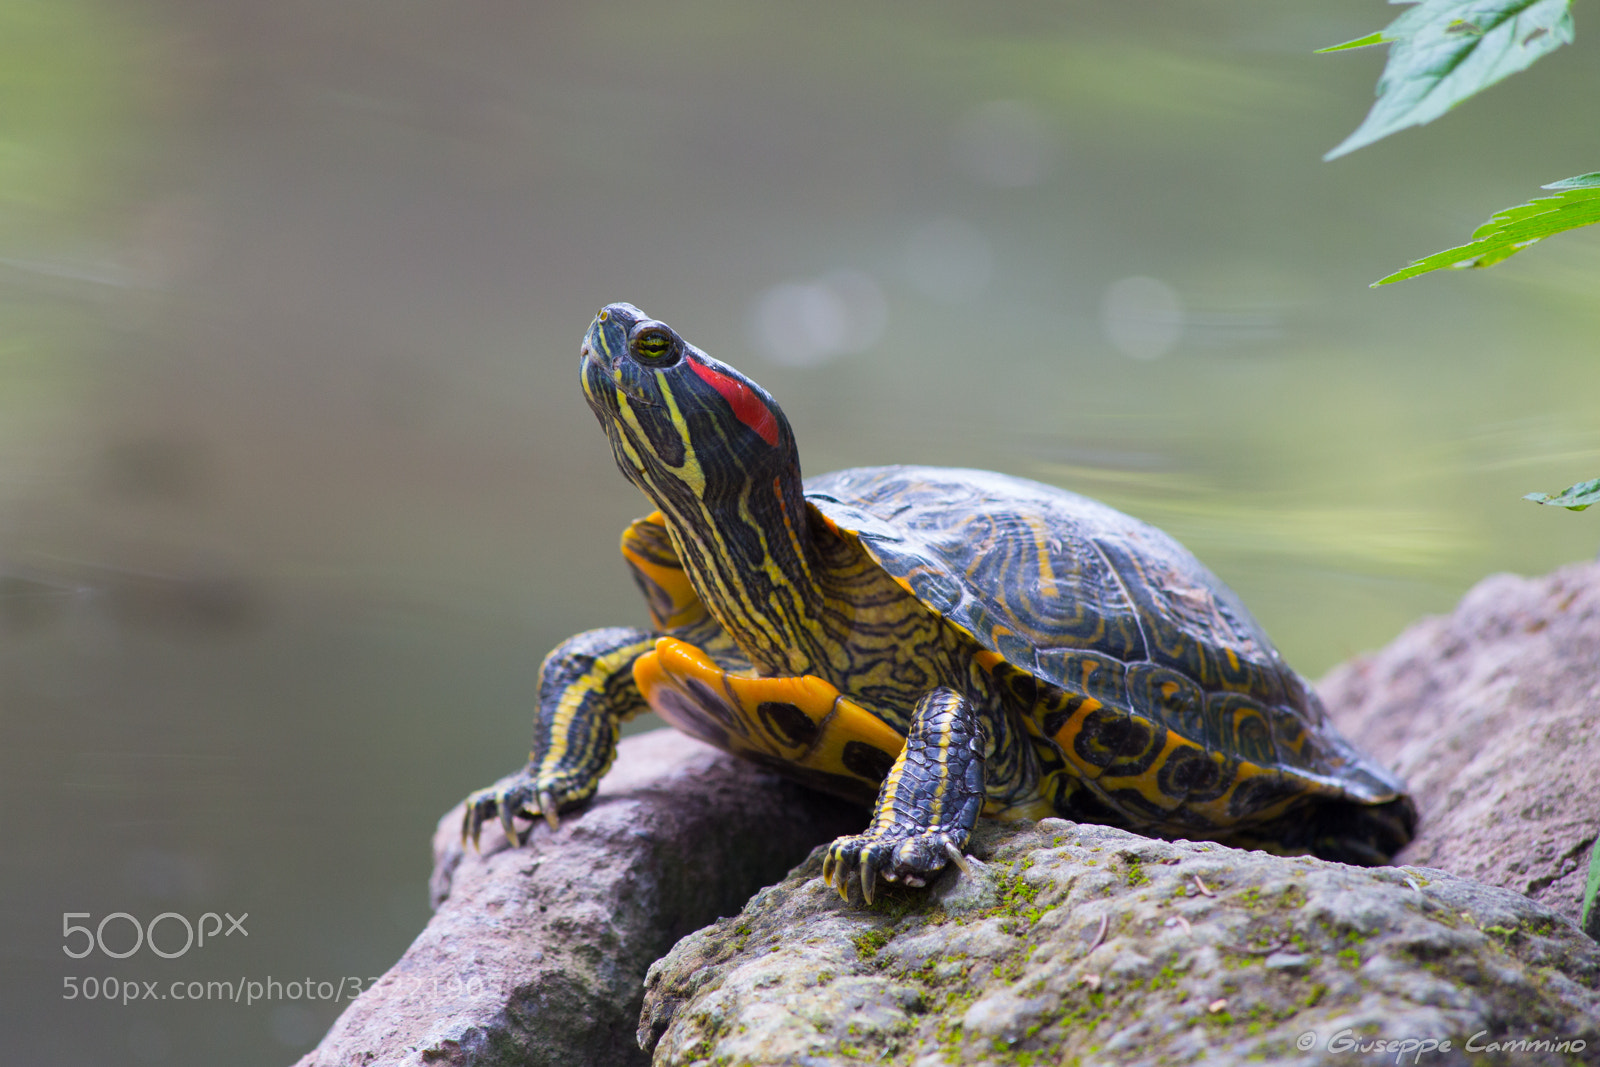 Photograph Villa Borghese - Turtle by Giuseppe Cammino on 500px